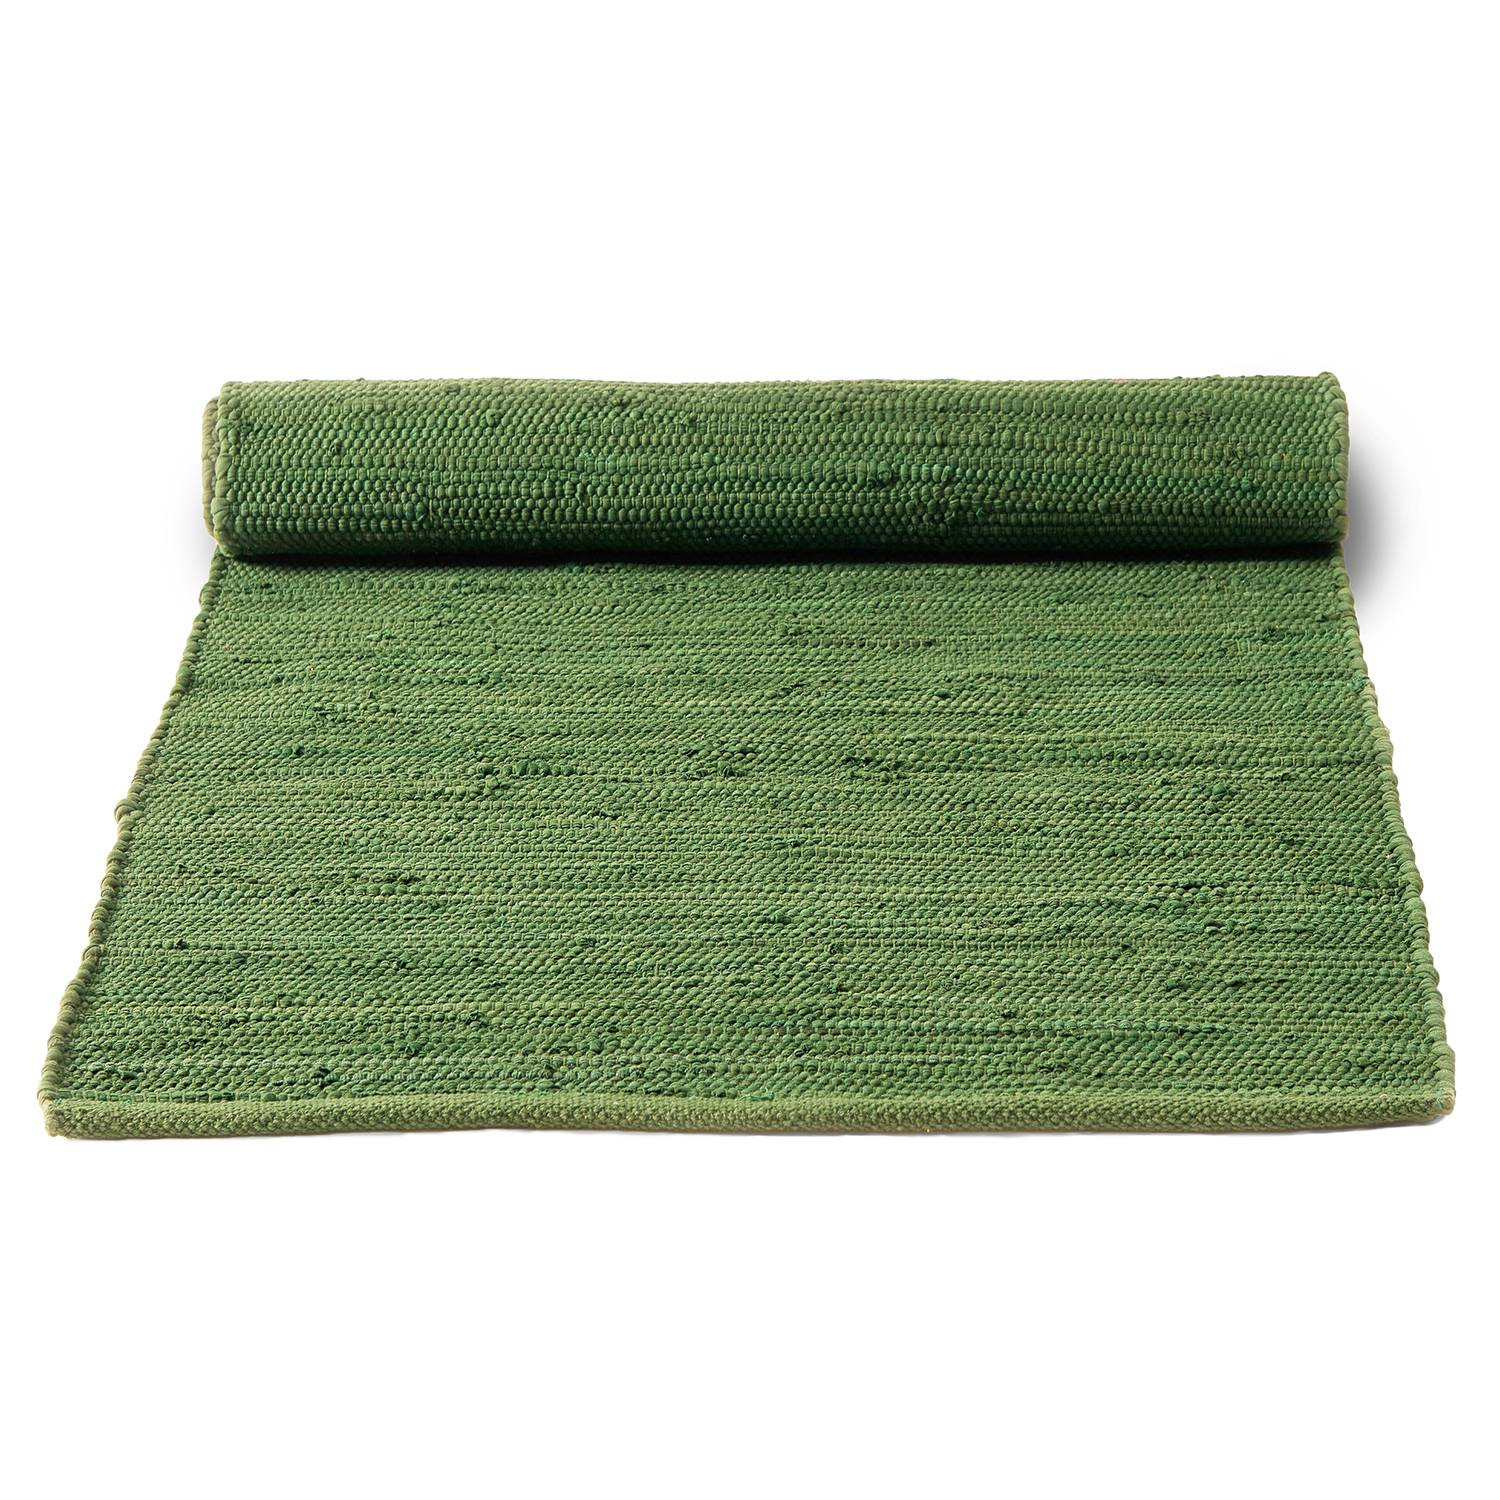 Rug Solid Cotton Matto 140x200cm, Olive Green